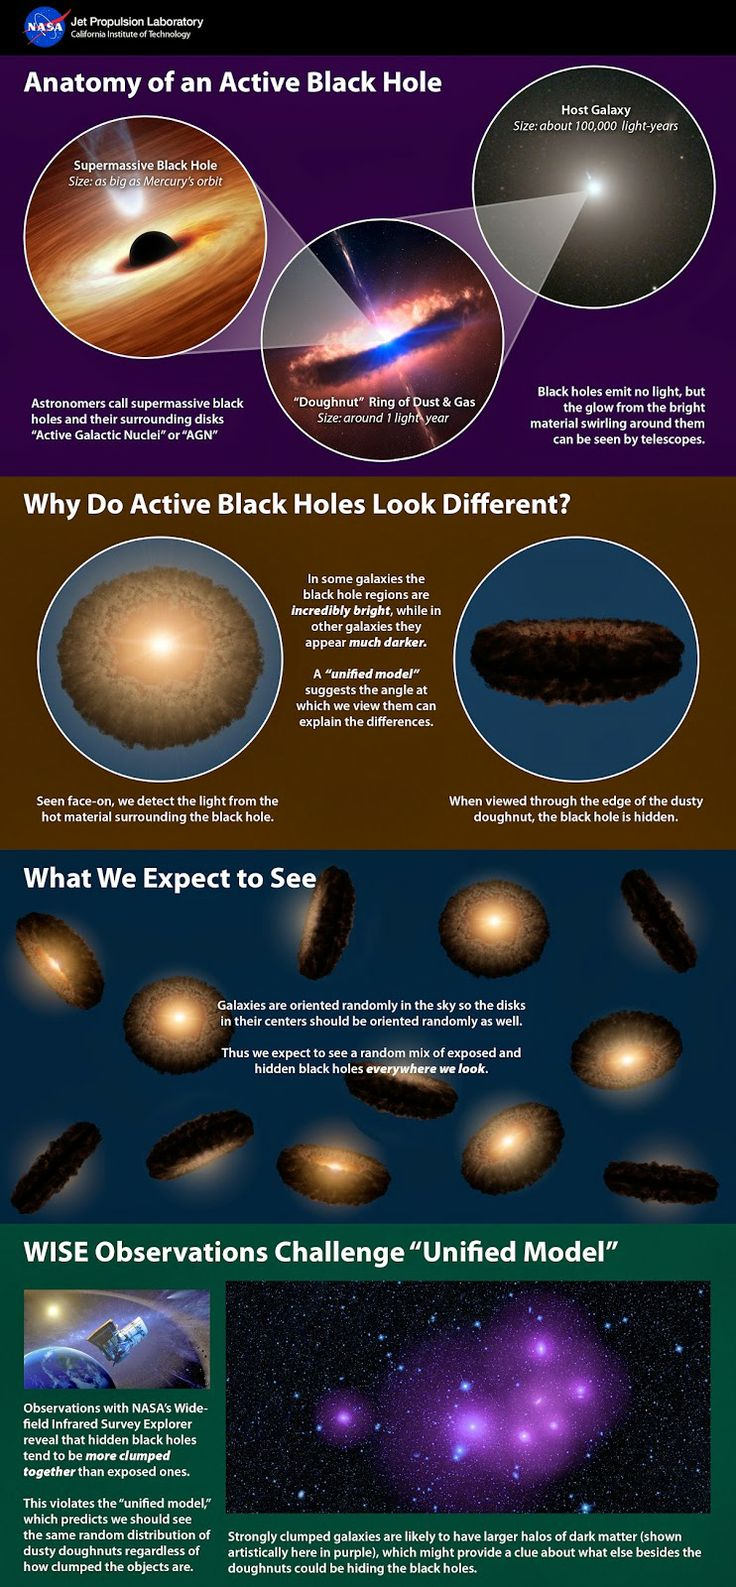 This infographic explains a popular theory of active supermassive black holes, referred to as the unified model -- and how new data from NASA's Wide-field Infrared Survey Explorer, or WISE, is at conflict with the model. - Image Credit: NASA/JPL-Caltech/NOAO/AURA/NSF/ESO - http://www.astrowatch.net/2014/05/wise-findings-poke-hole-in-black-hole.html?utm_source=feedburnerutm_medium=emailutm_campaign=Feed%3A+AstroWatch+%28Astro+Watch%29